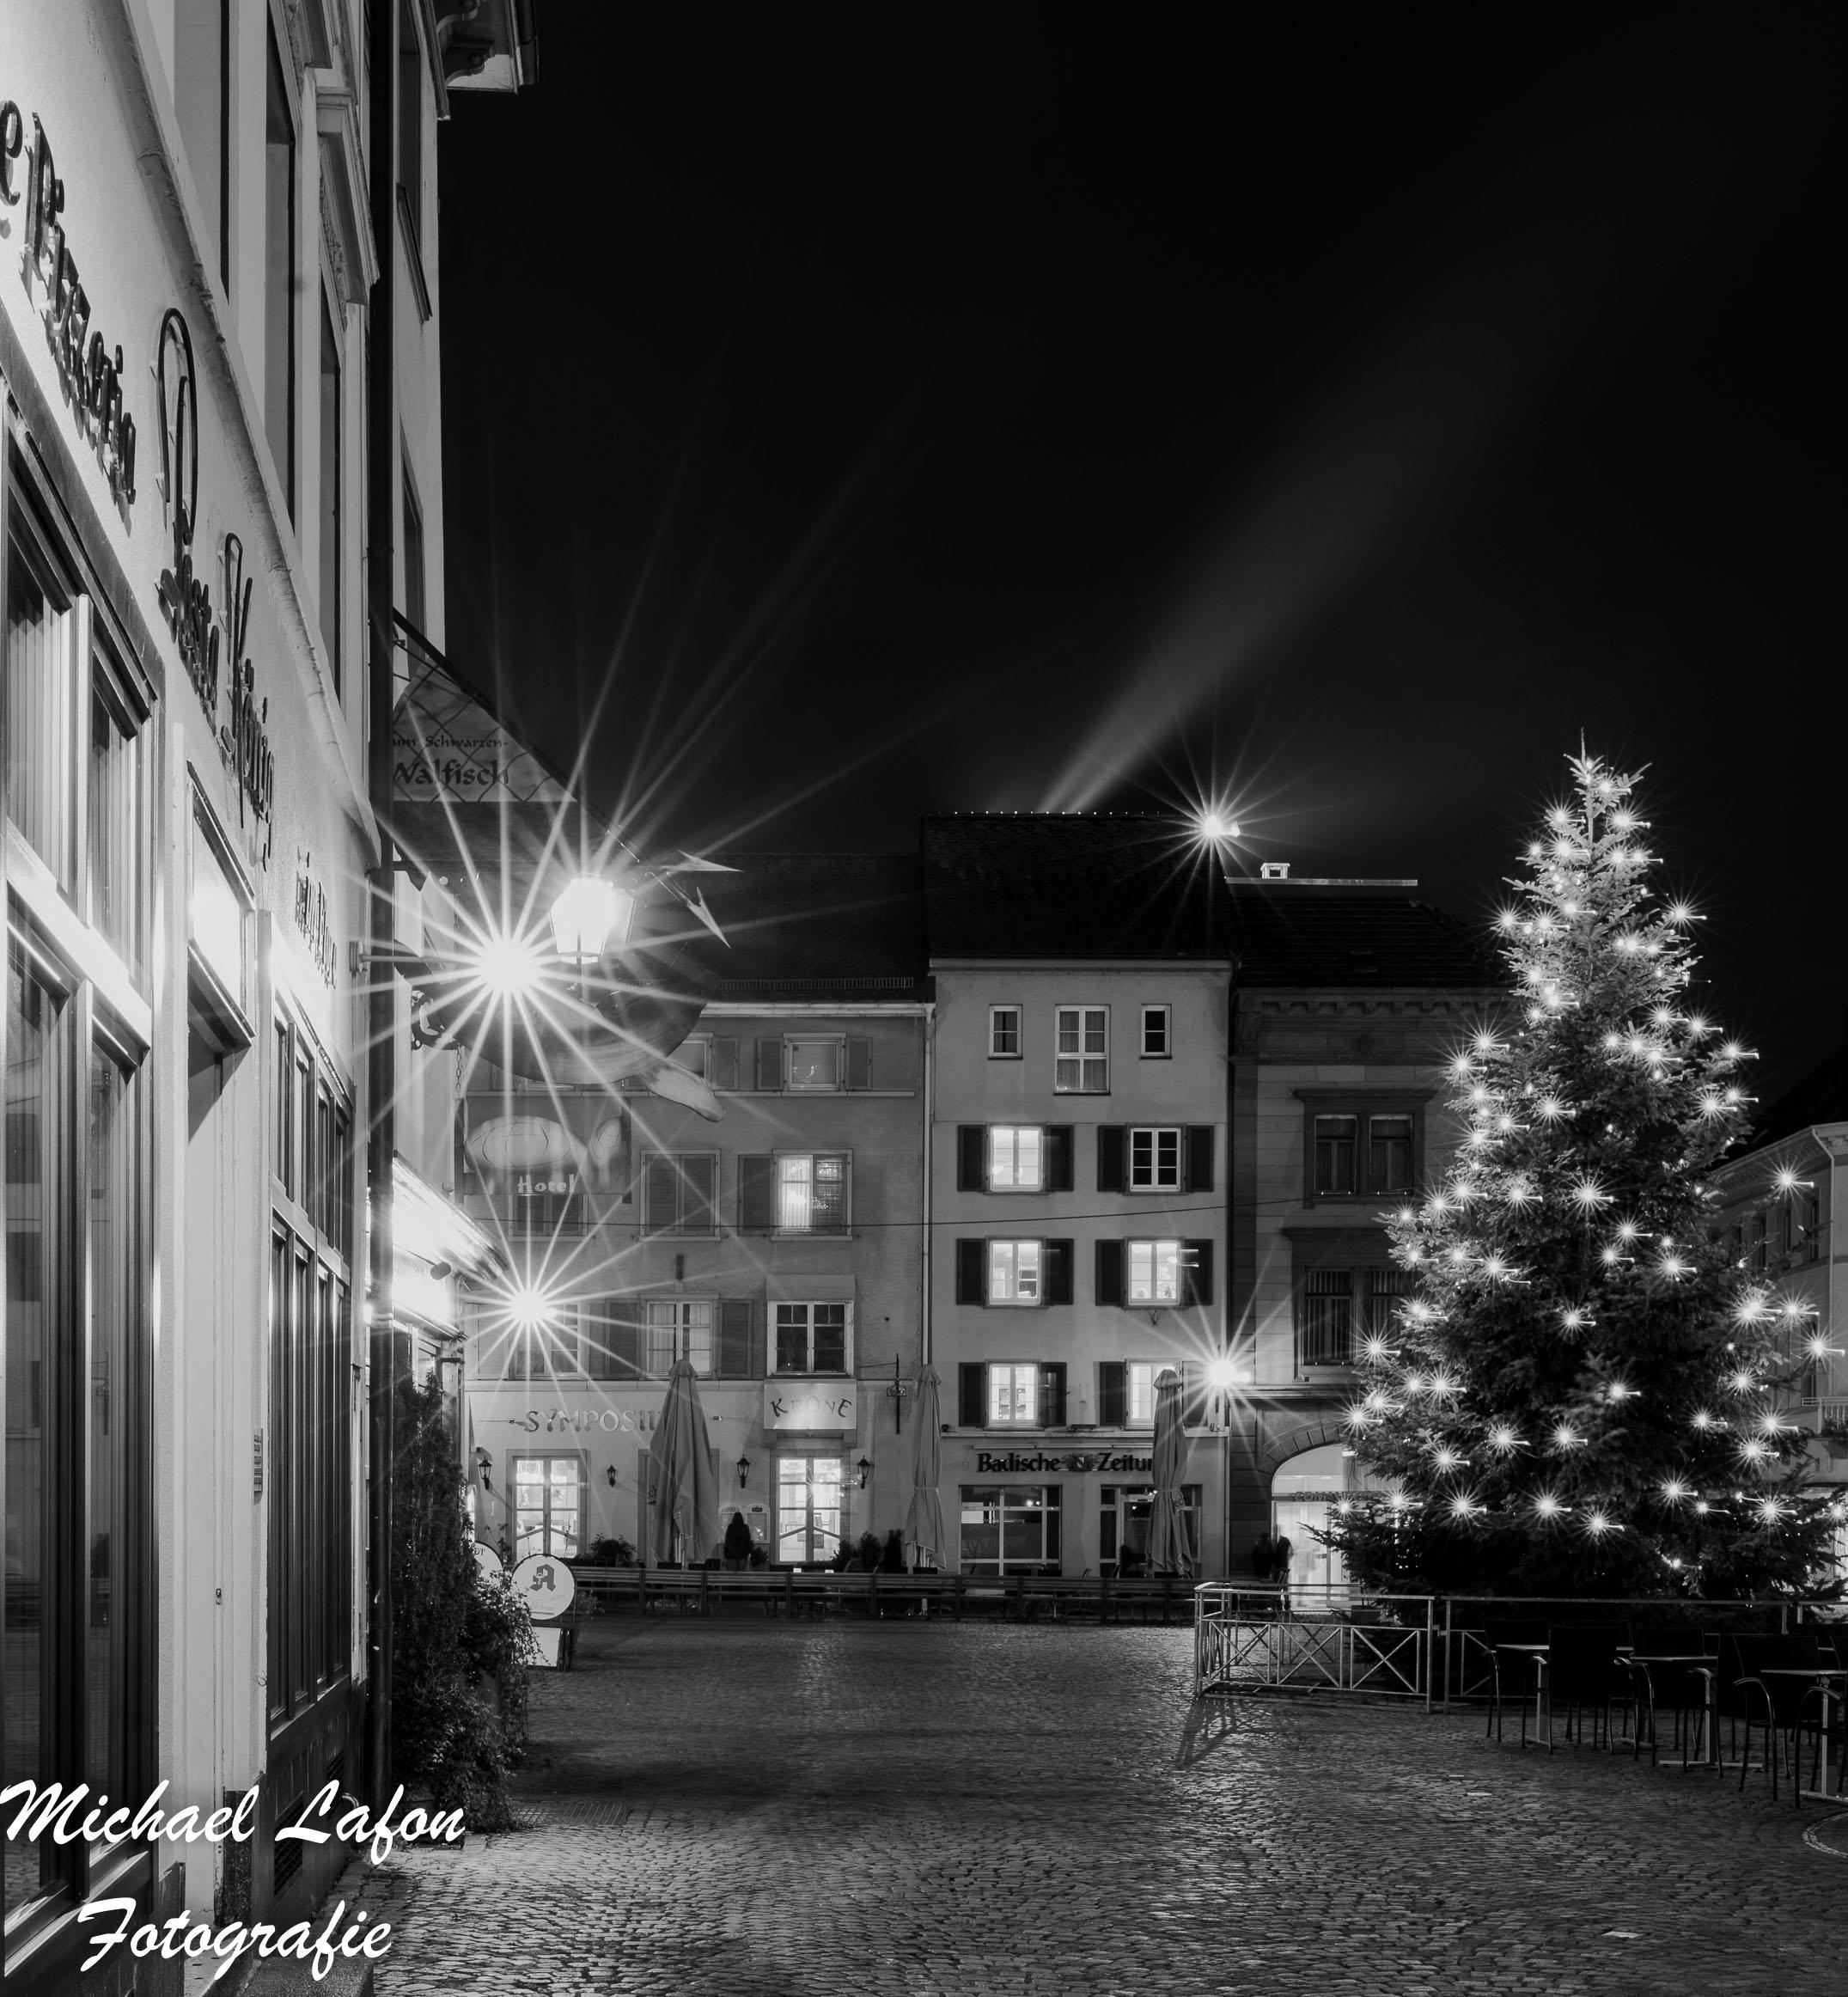 Michael Lafon Fotografie | Bad Säckingen | Bad Säckingen Bild 09